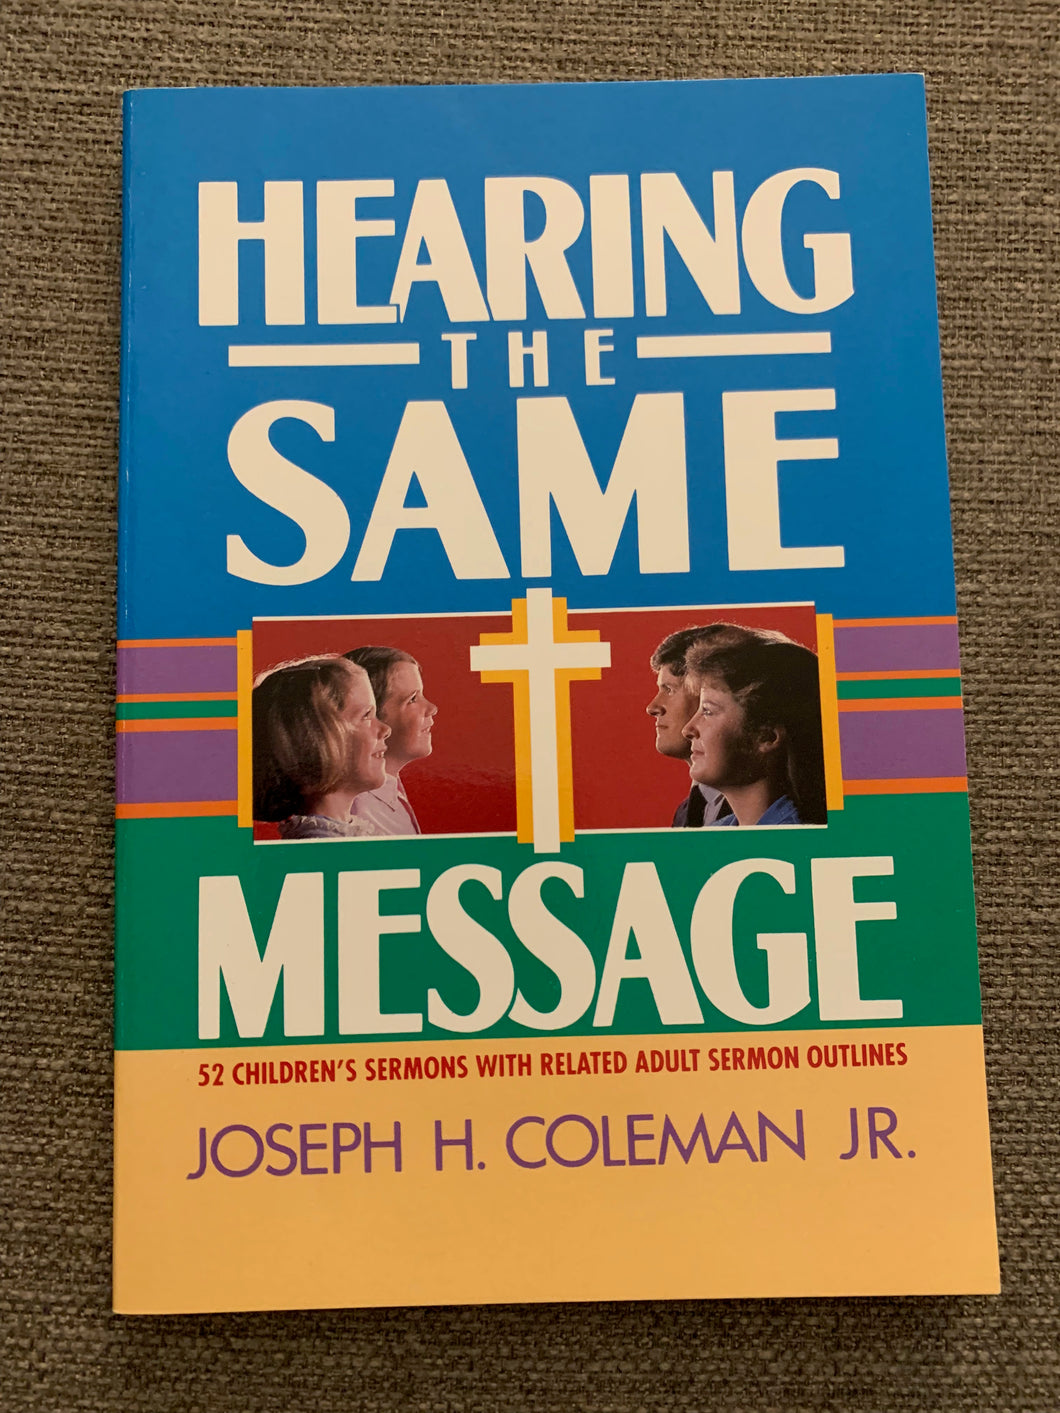 Hearing the Same Message by Joseph H. Coleman